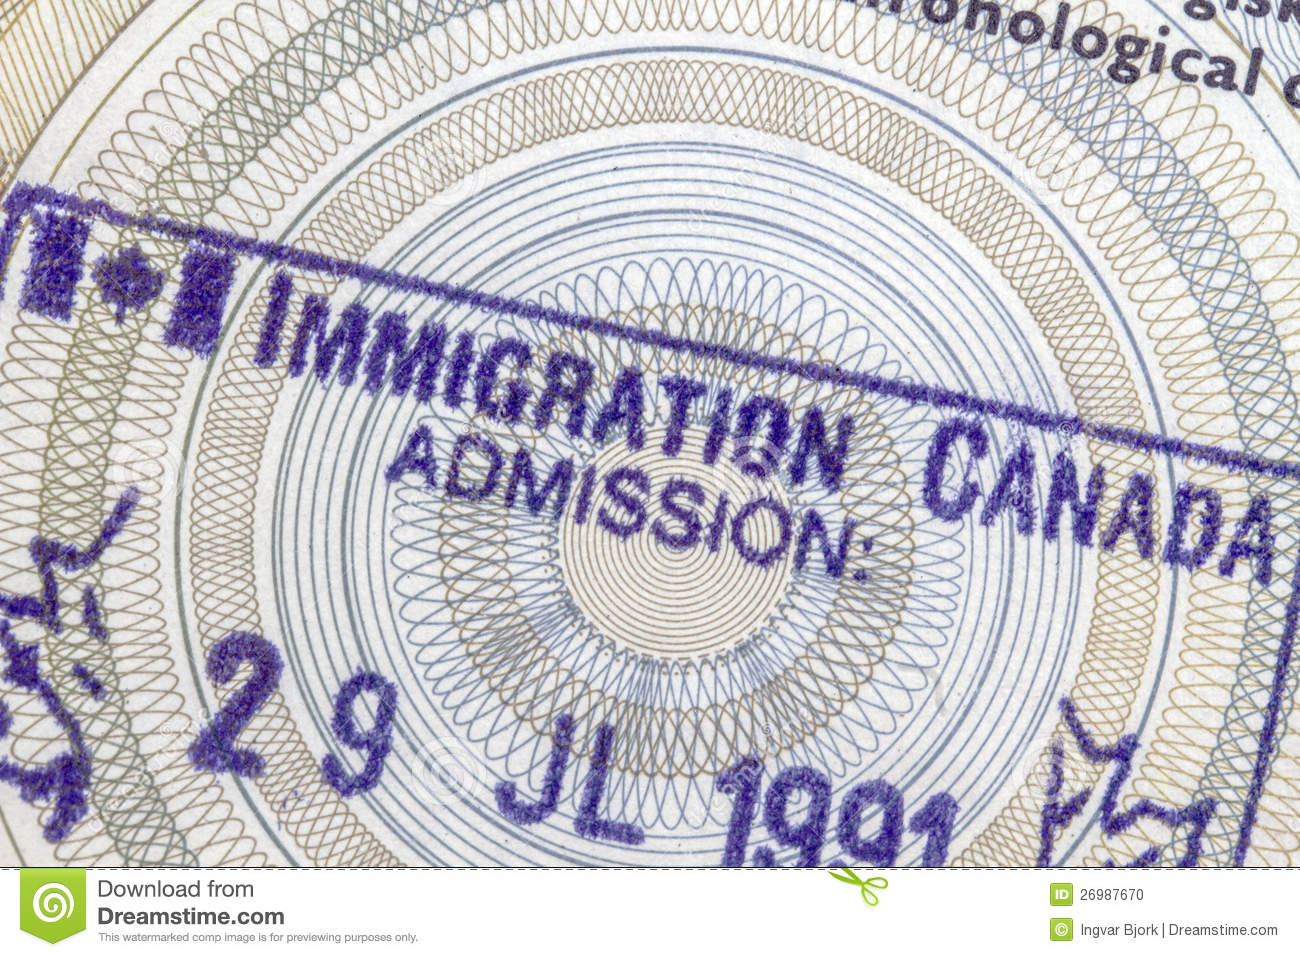 Peruanos  nz immigration student visa forms   Requieren Visa Para Republica Dominicana